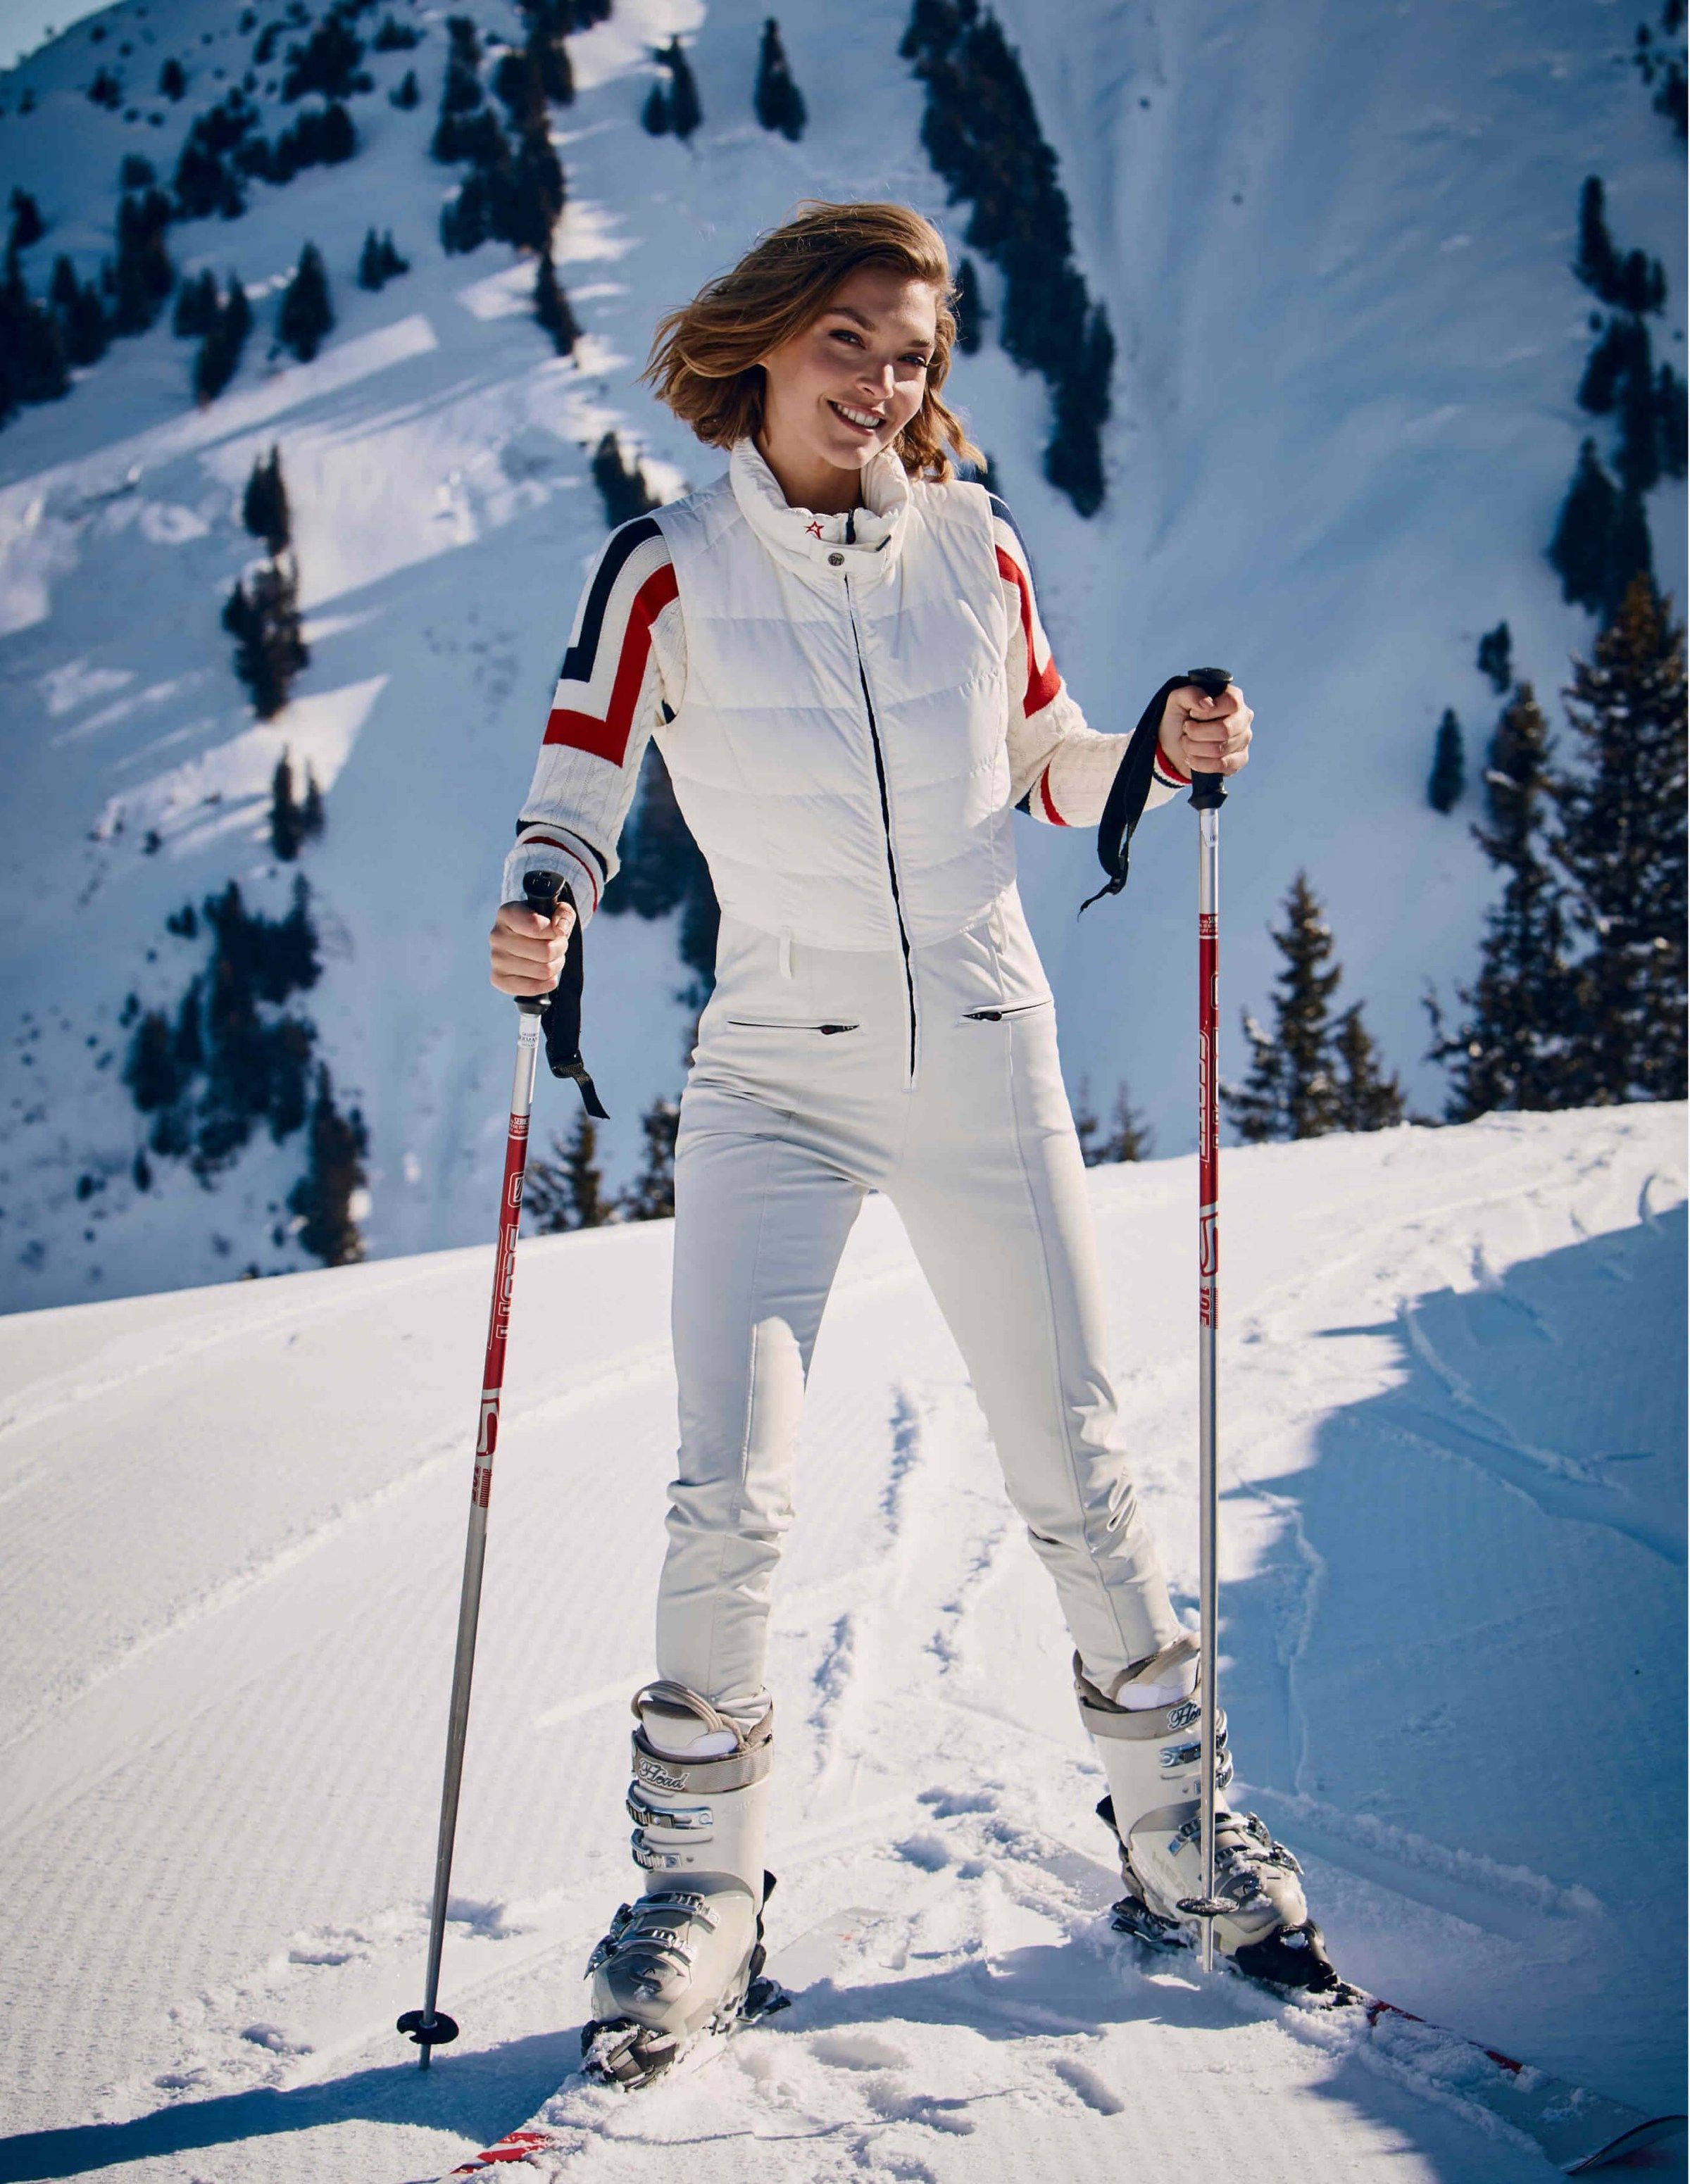 ab0d7a2f091 Perfect Moment Ski 18 Collection